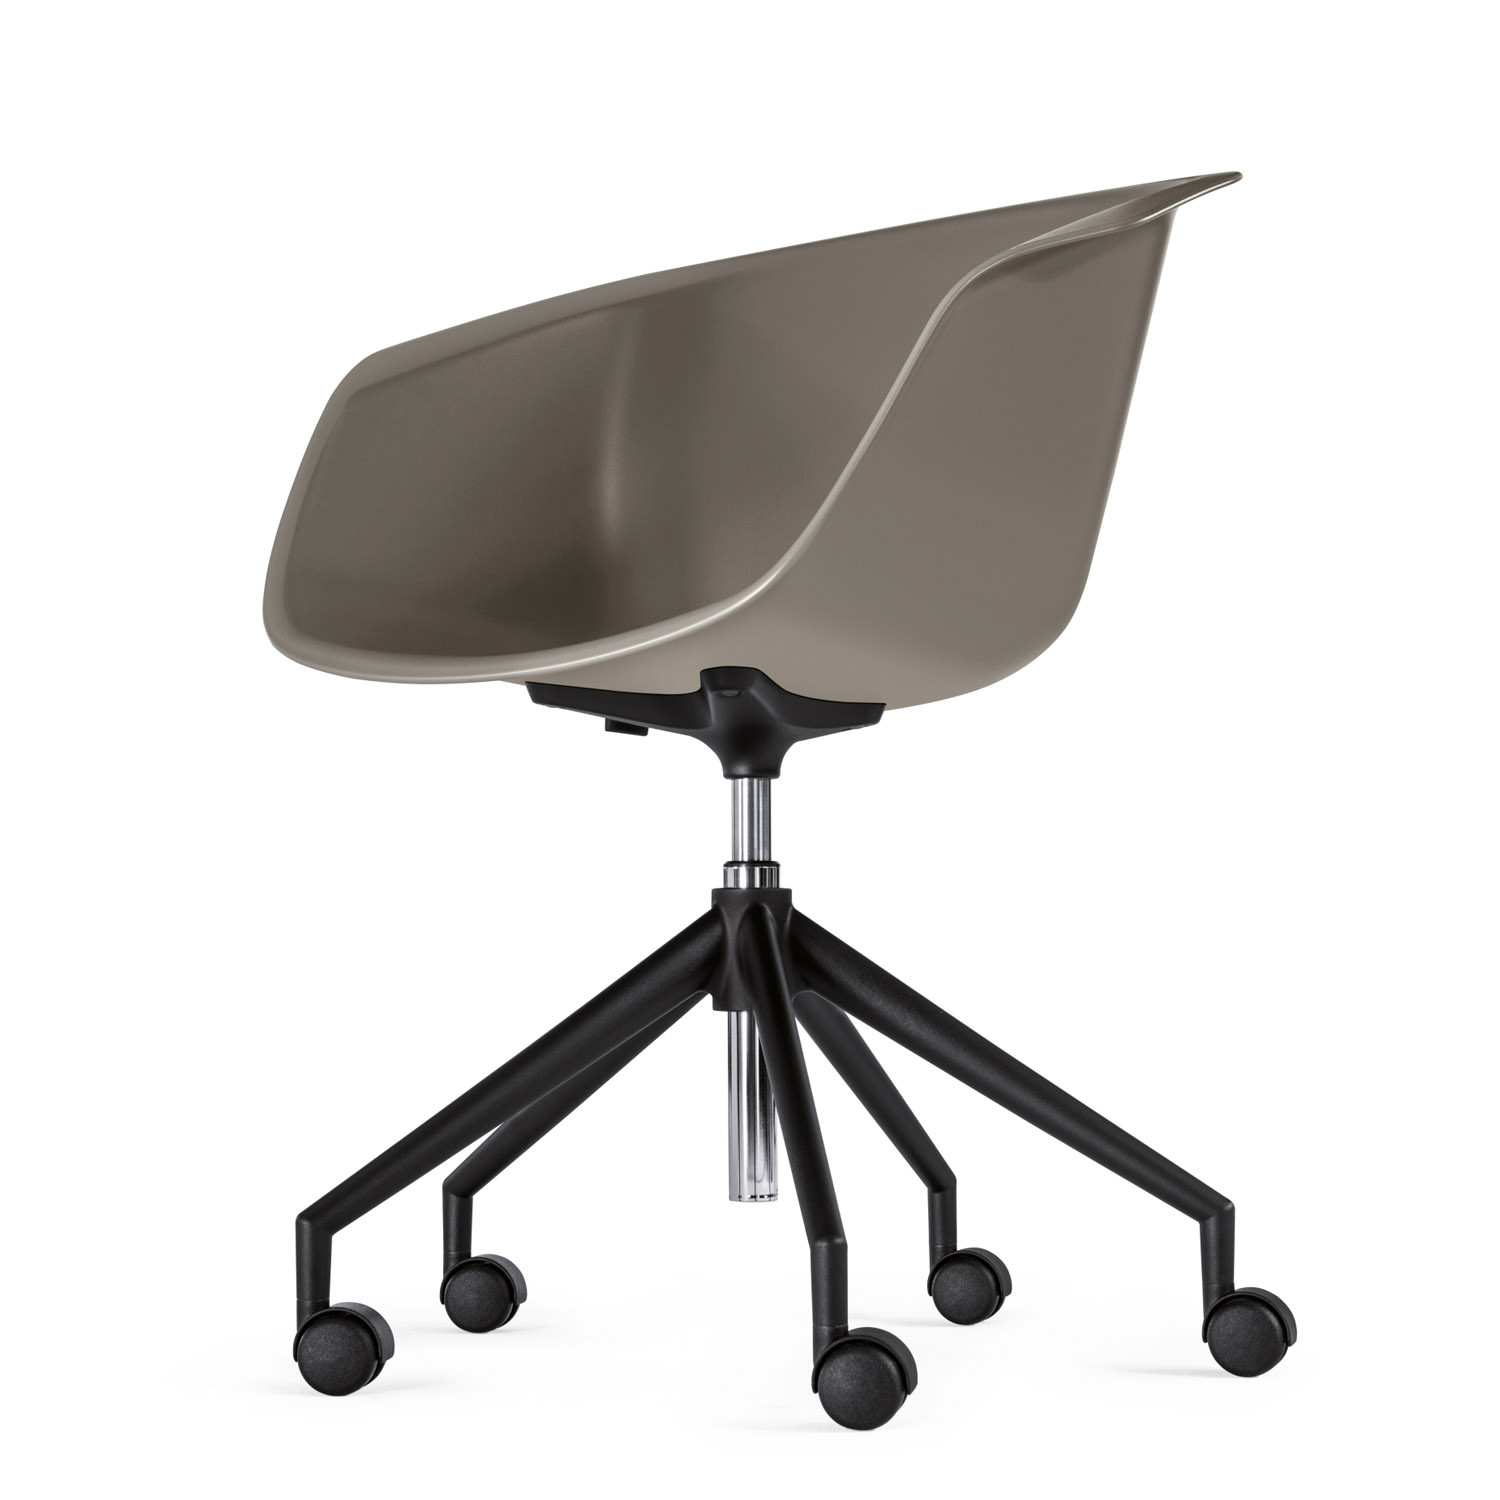 On Spot Chair with Castors